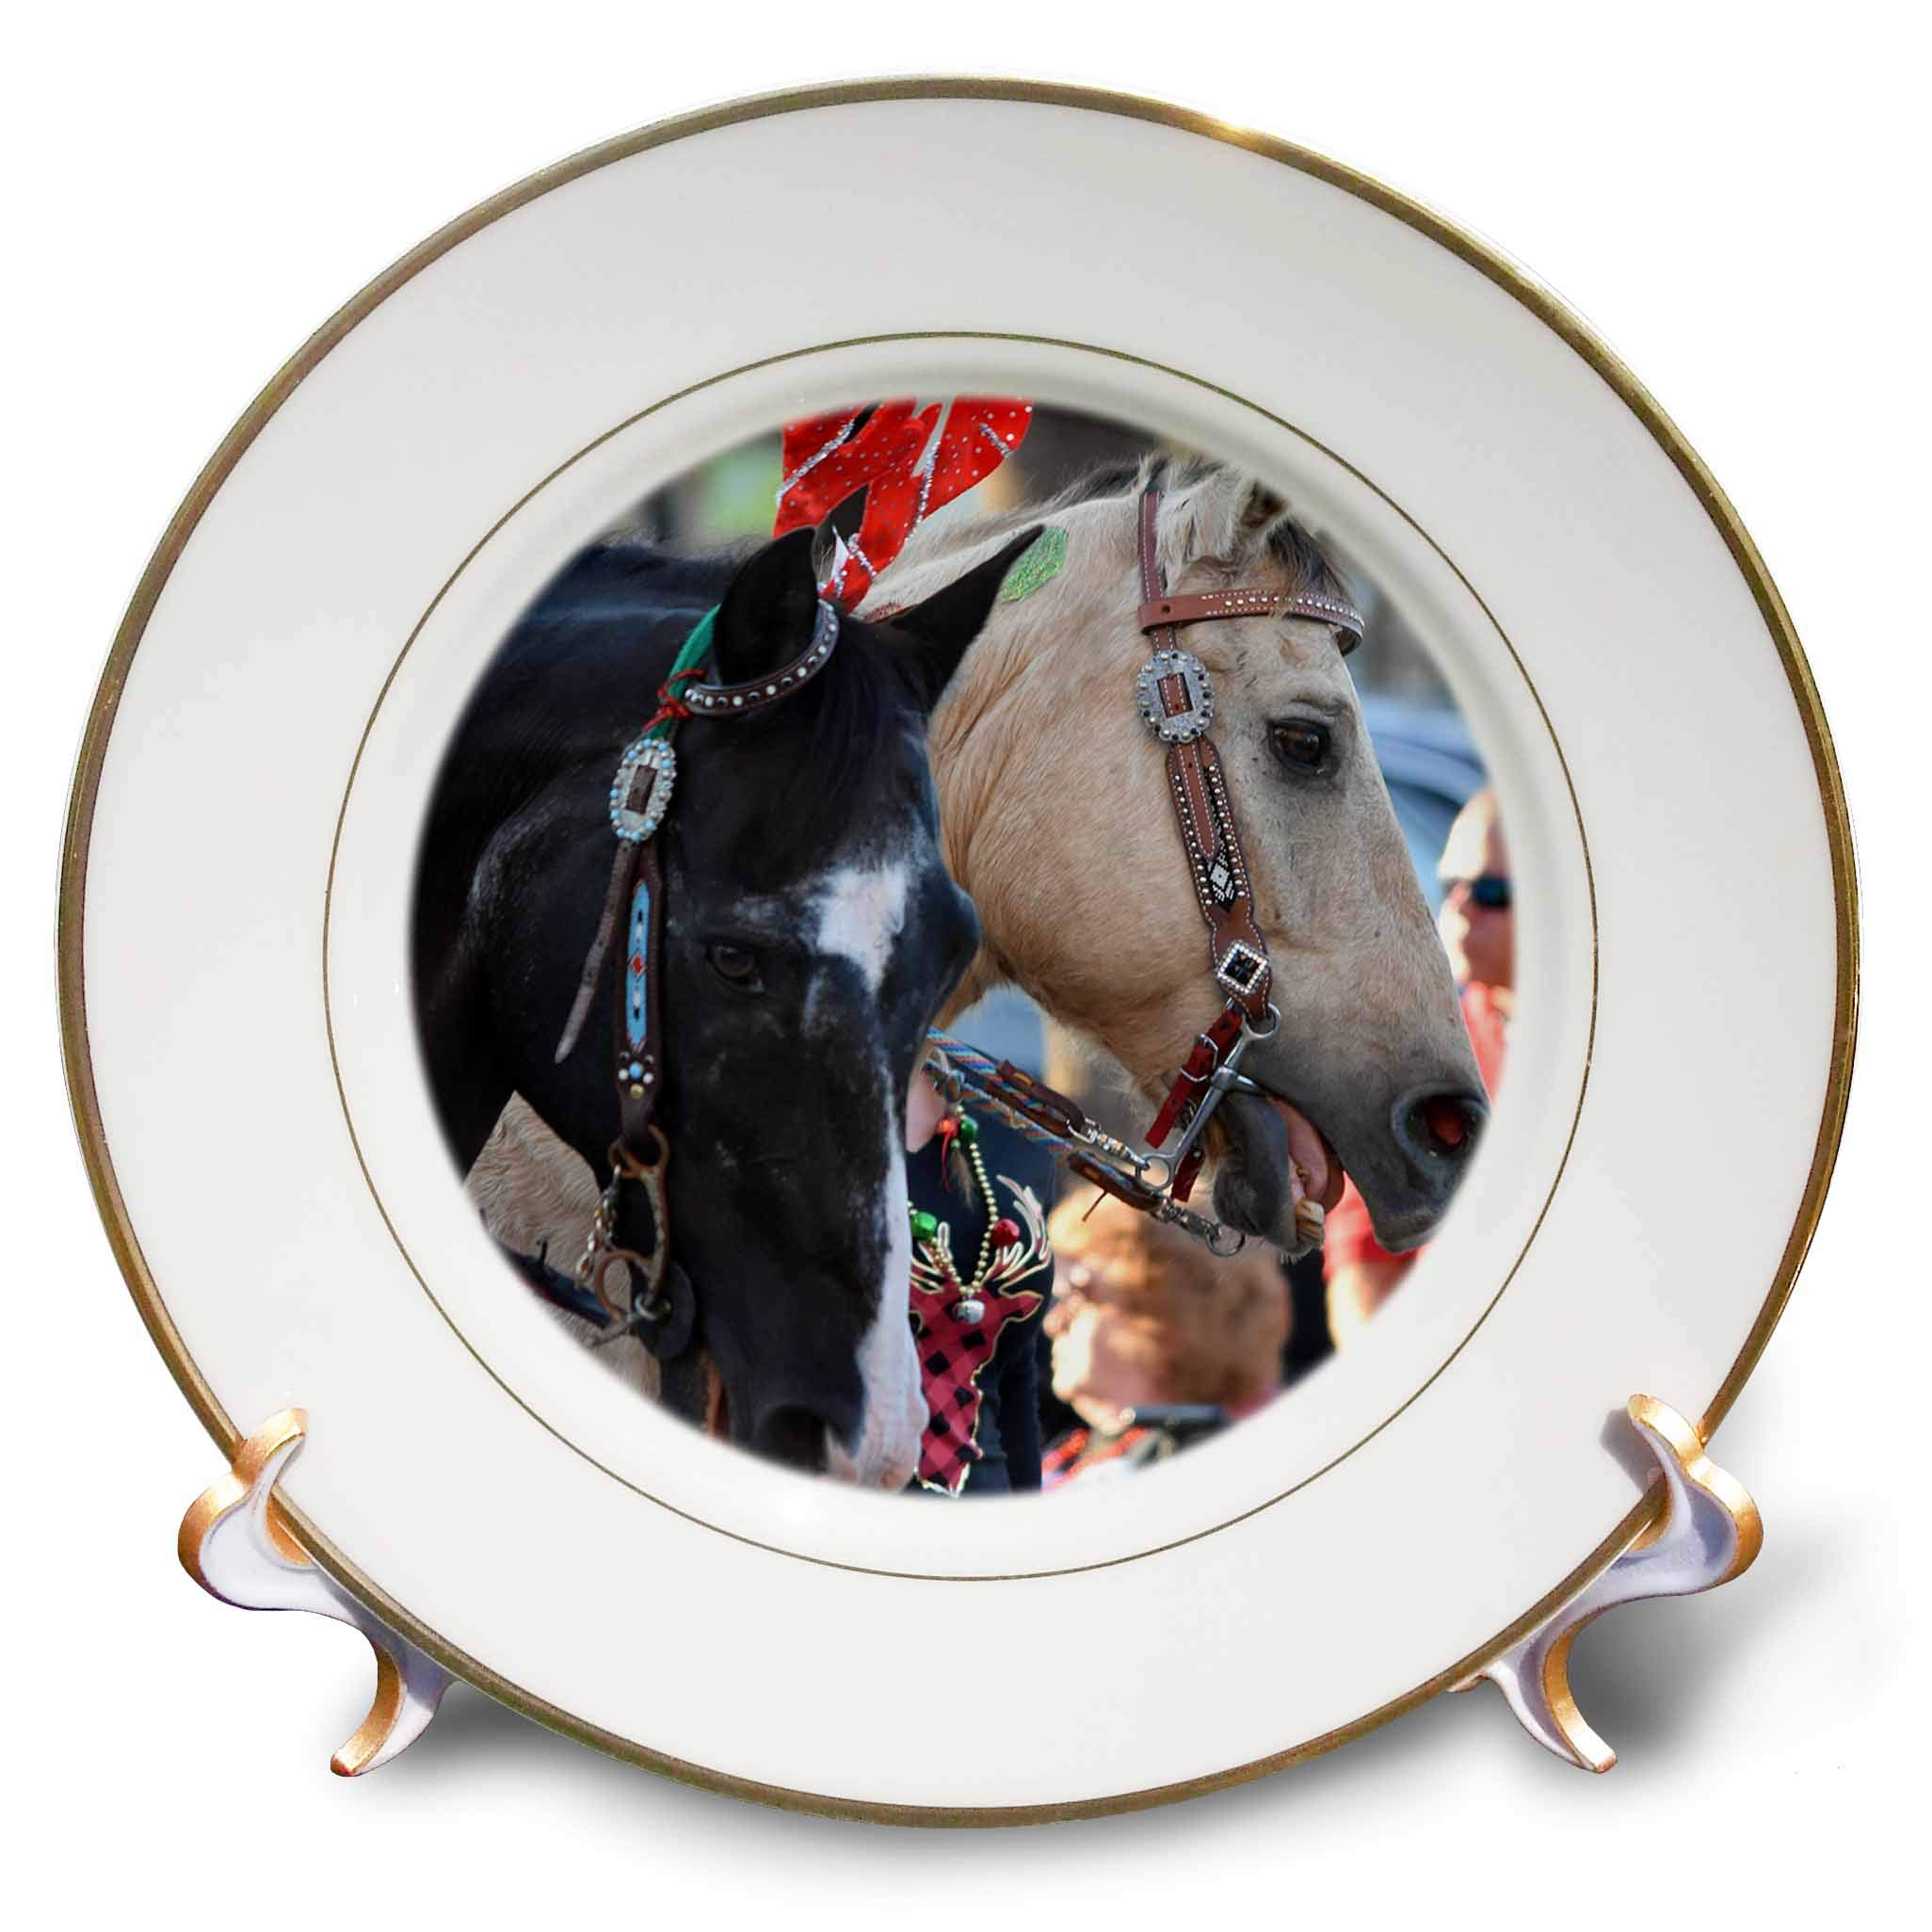 3dRose Susans Zoo Crew Animal - Two Horses All Dressed up - 8 inch Porcelain Plate (cp_294915_1)